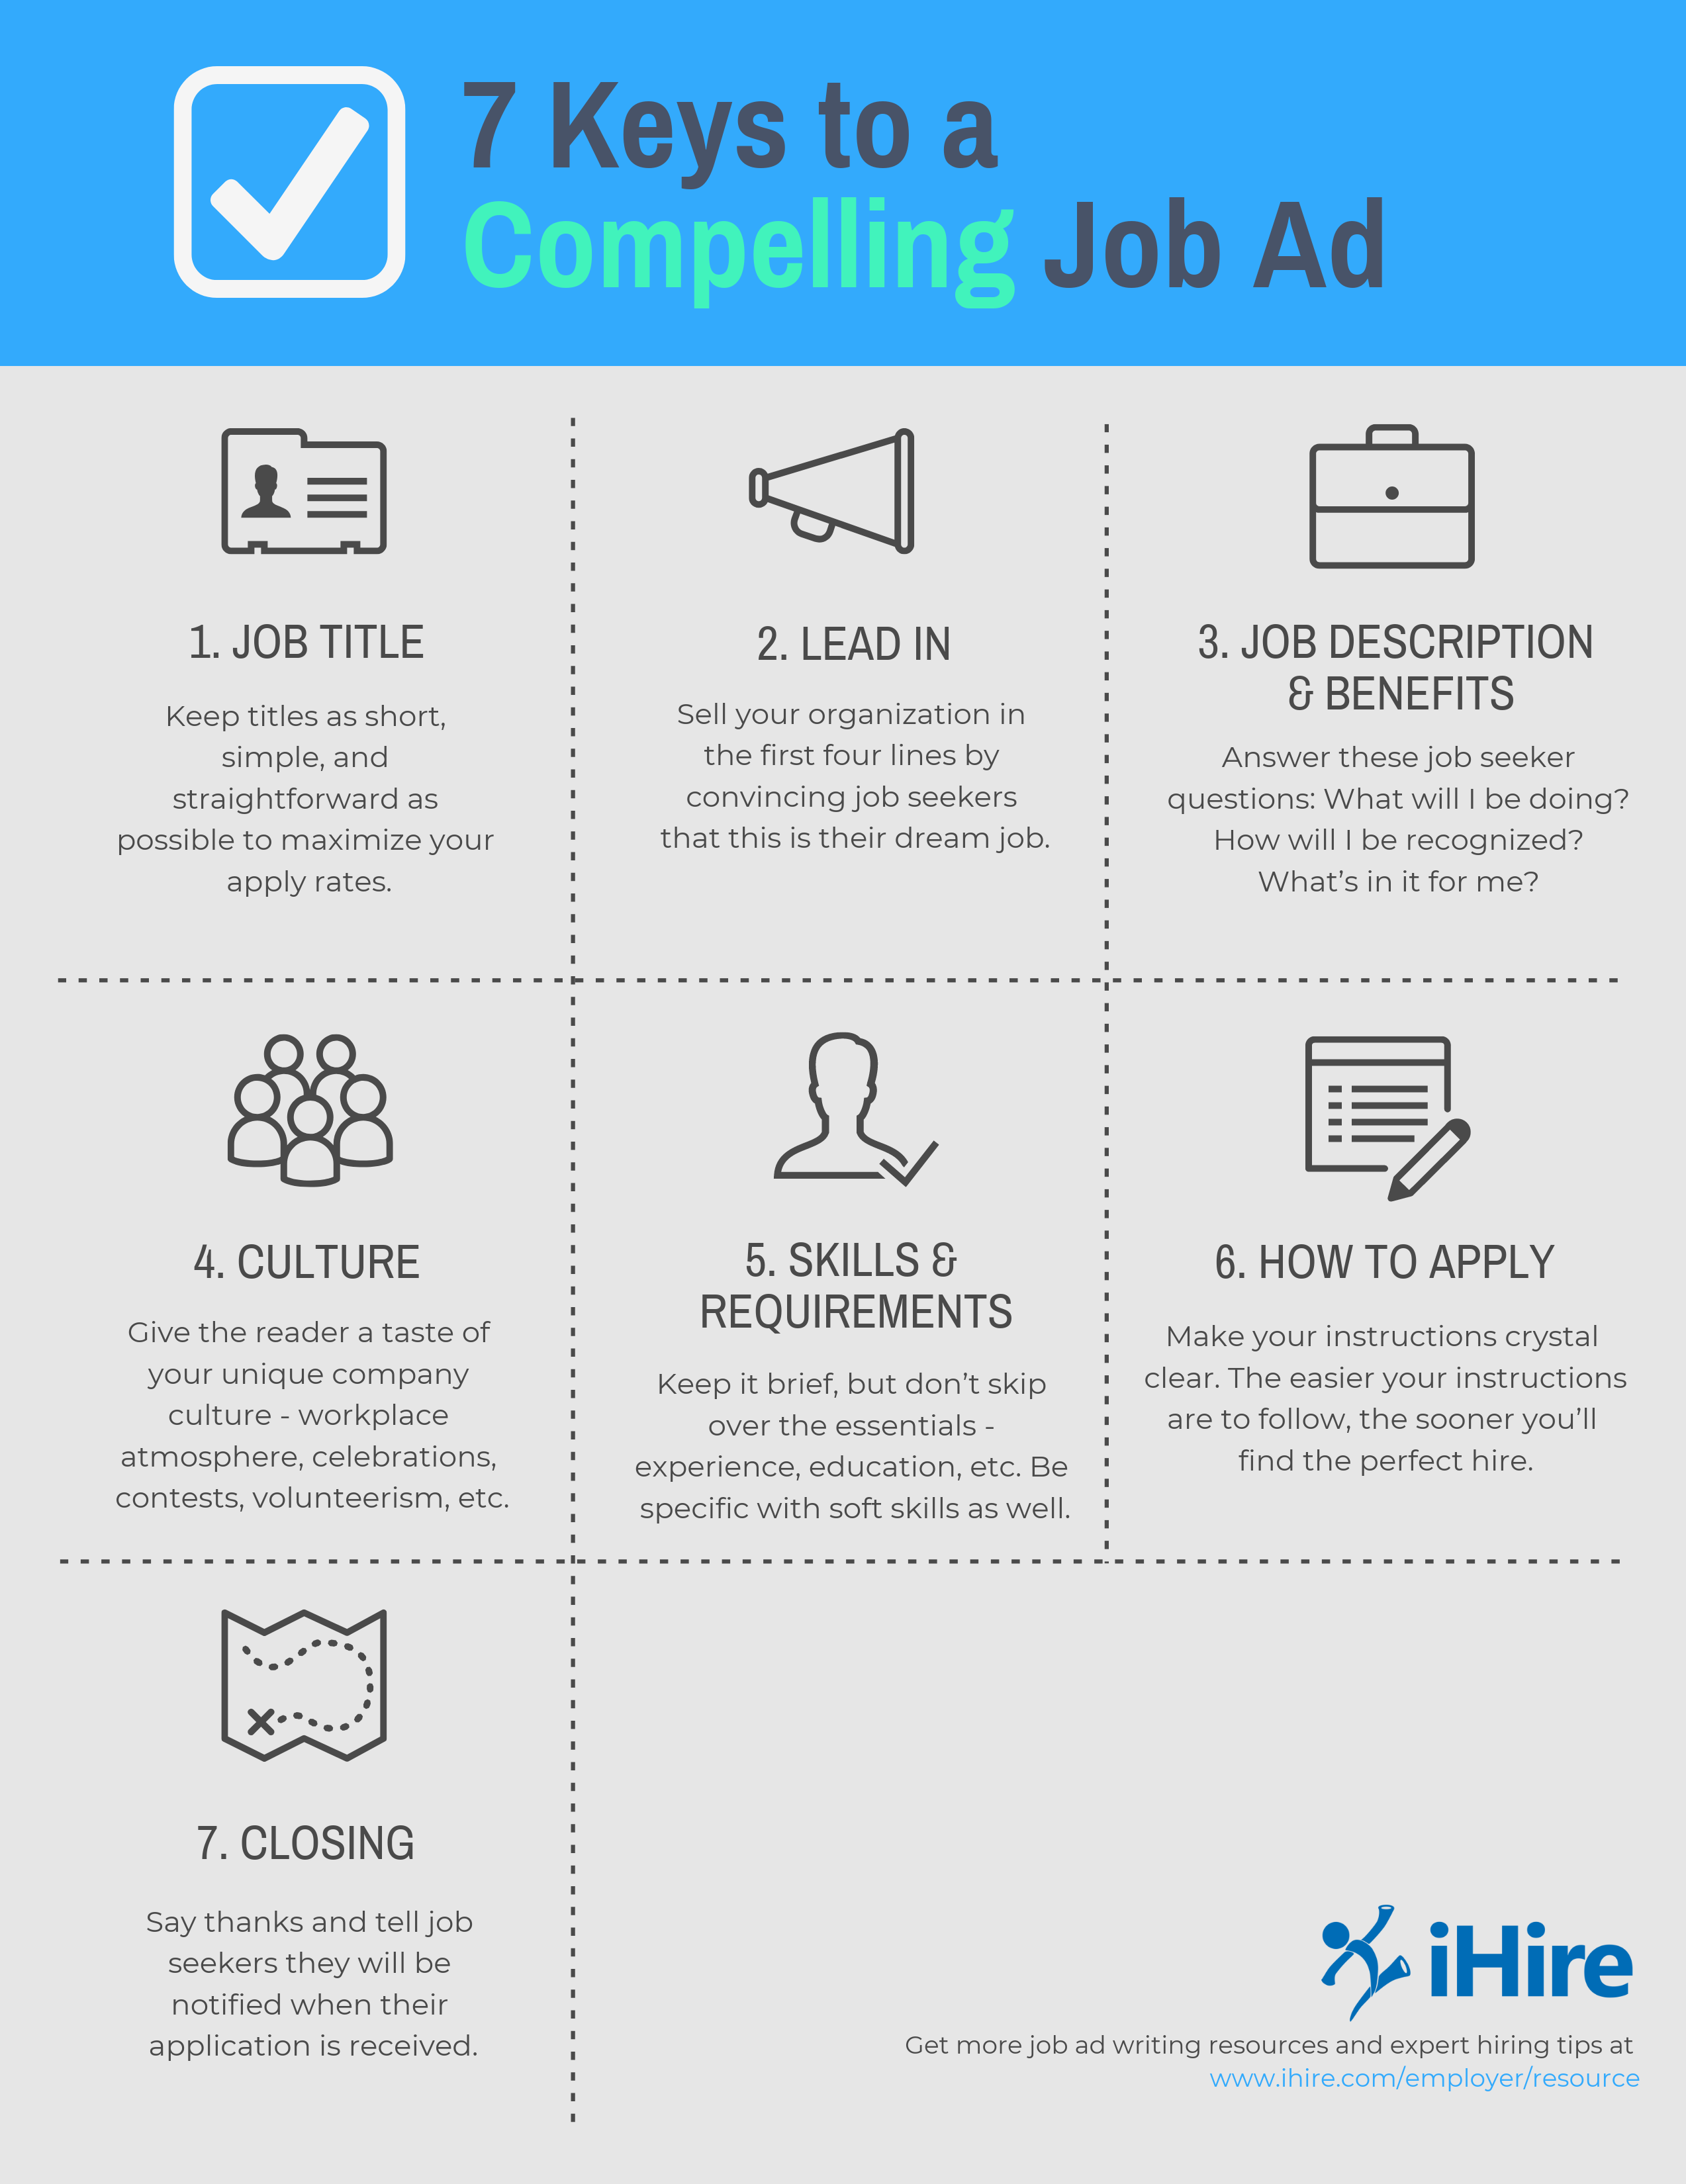 ihire 7 keys to a compelling job ad infographic